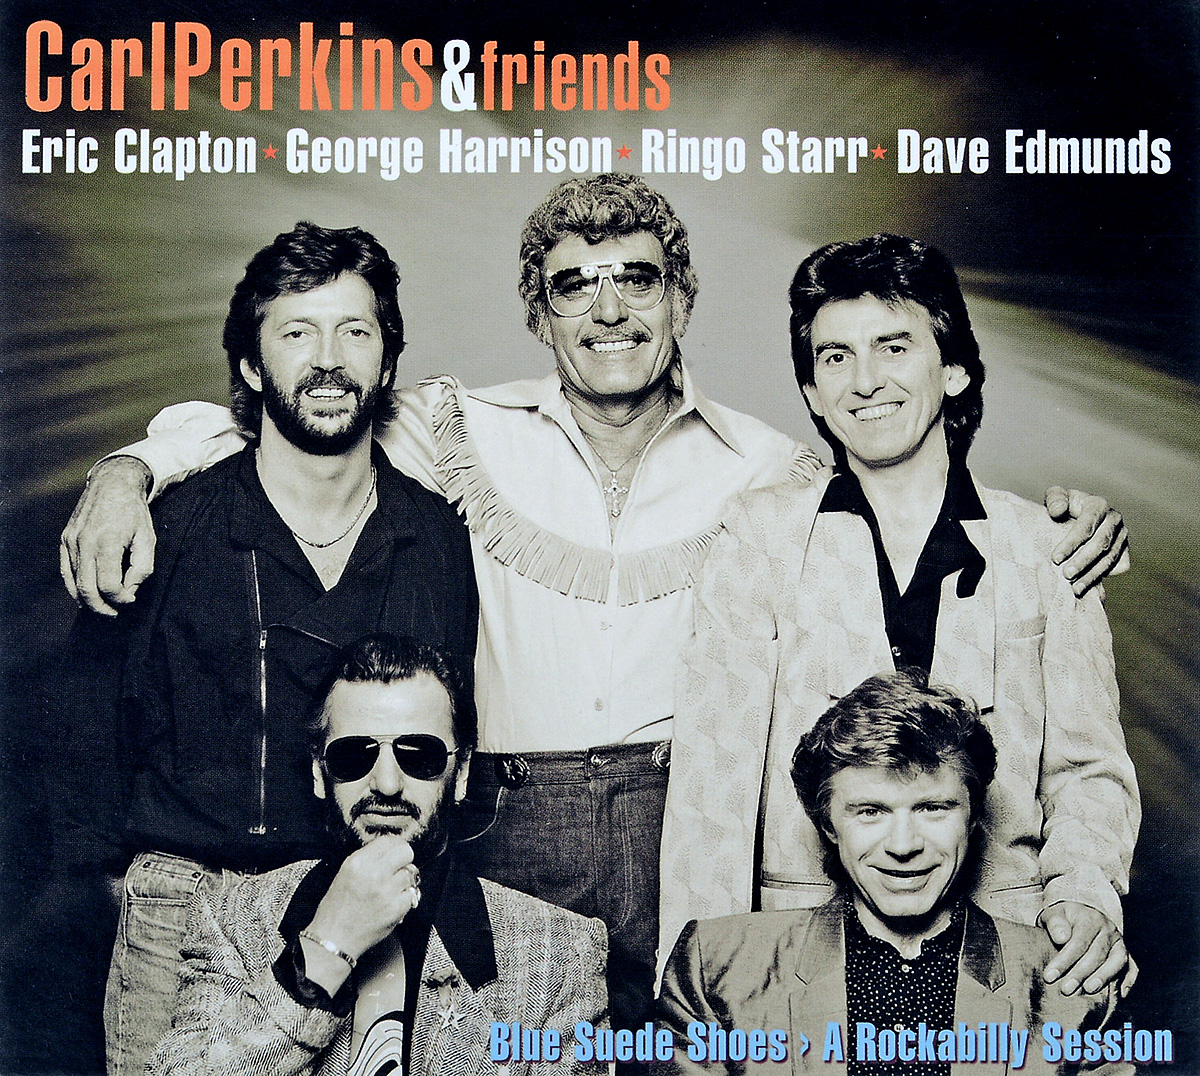 Carl Perkins & Friends: Blue Suede Shoes: A Rockabilly Session: 30th Anniversary Edition (CD + DVD) джемперы agatha ruiz de la prada джемпер